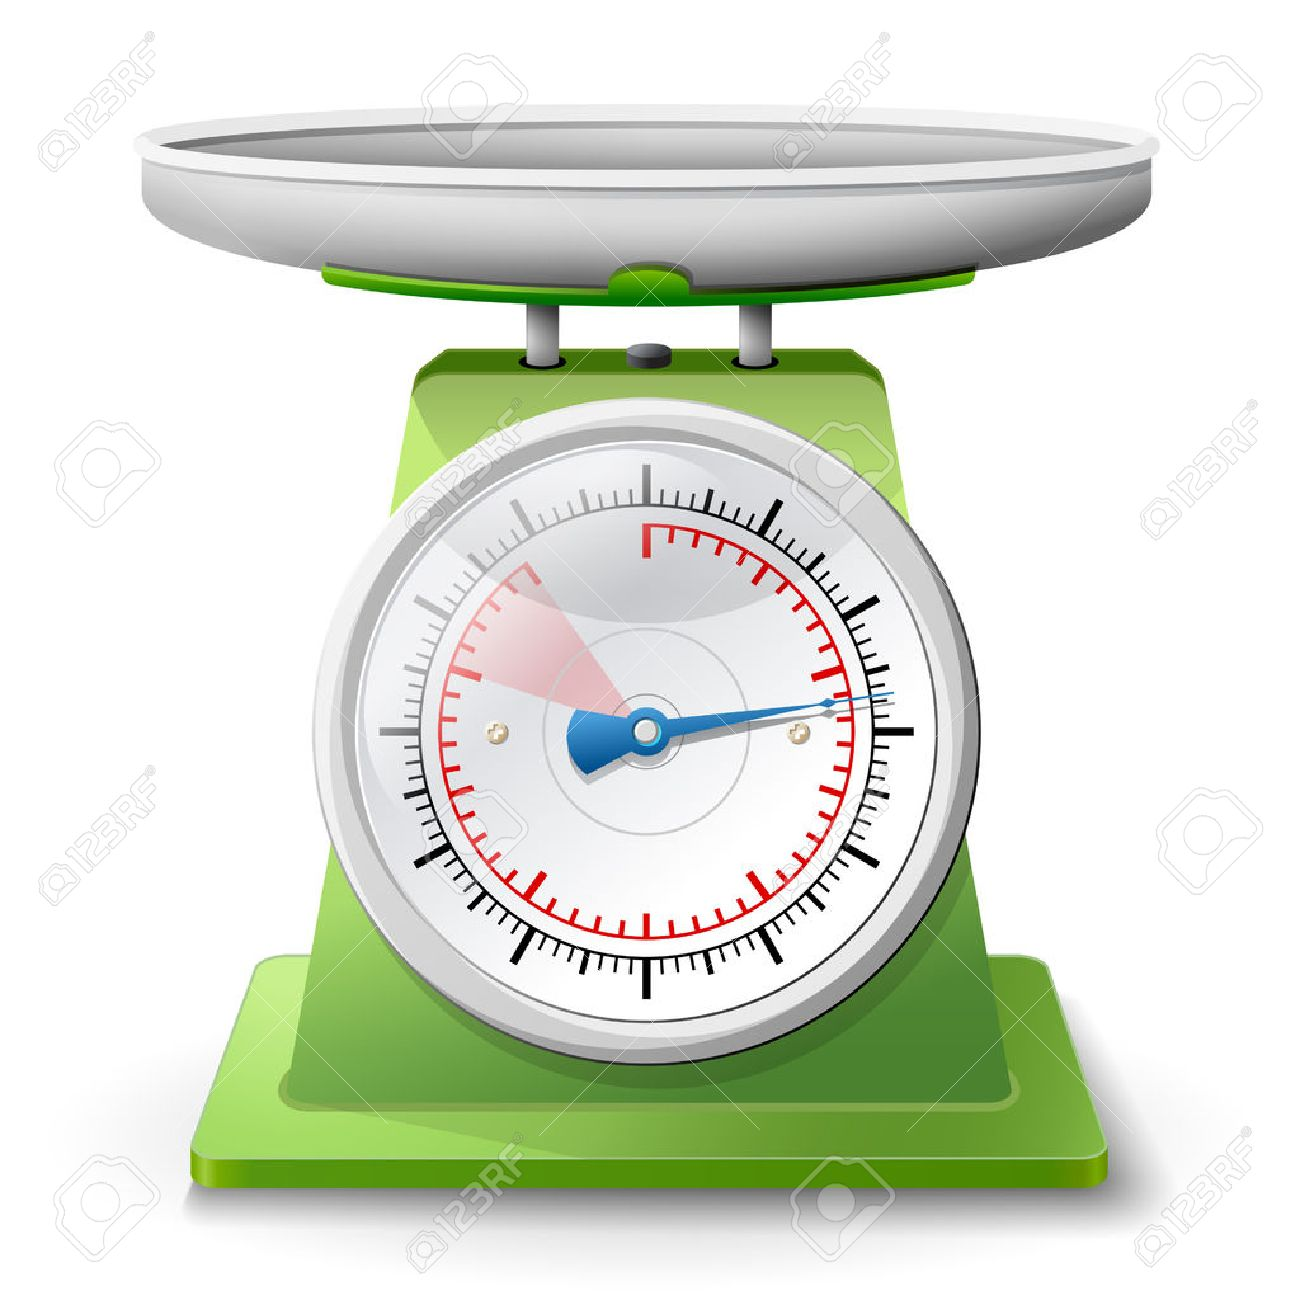 nice Kitchen Weighing Scales With Weights #3: kitchen scale weight scale on white background weighing scales with pan and dial qualitative vector.